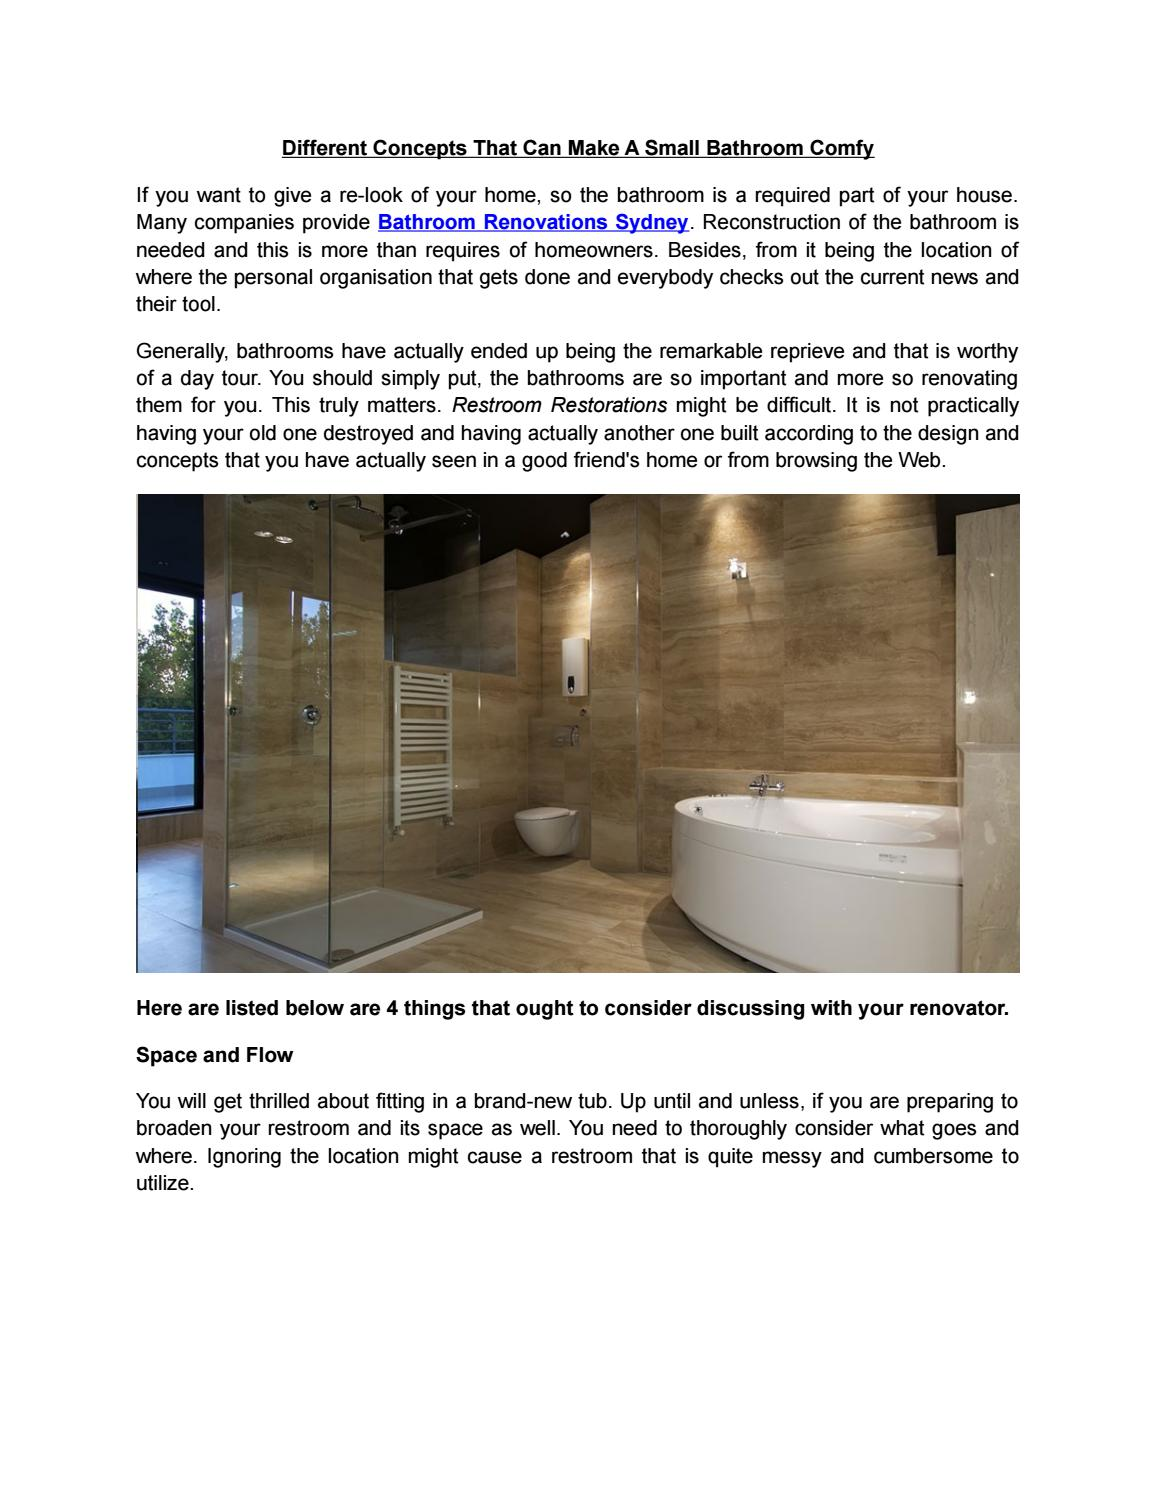 Different Concepts That Can Make A Small Bathroom Comfy By Itn